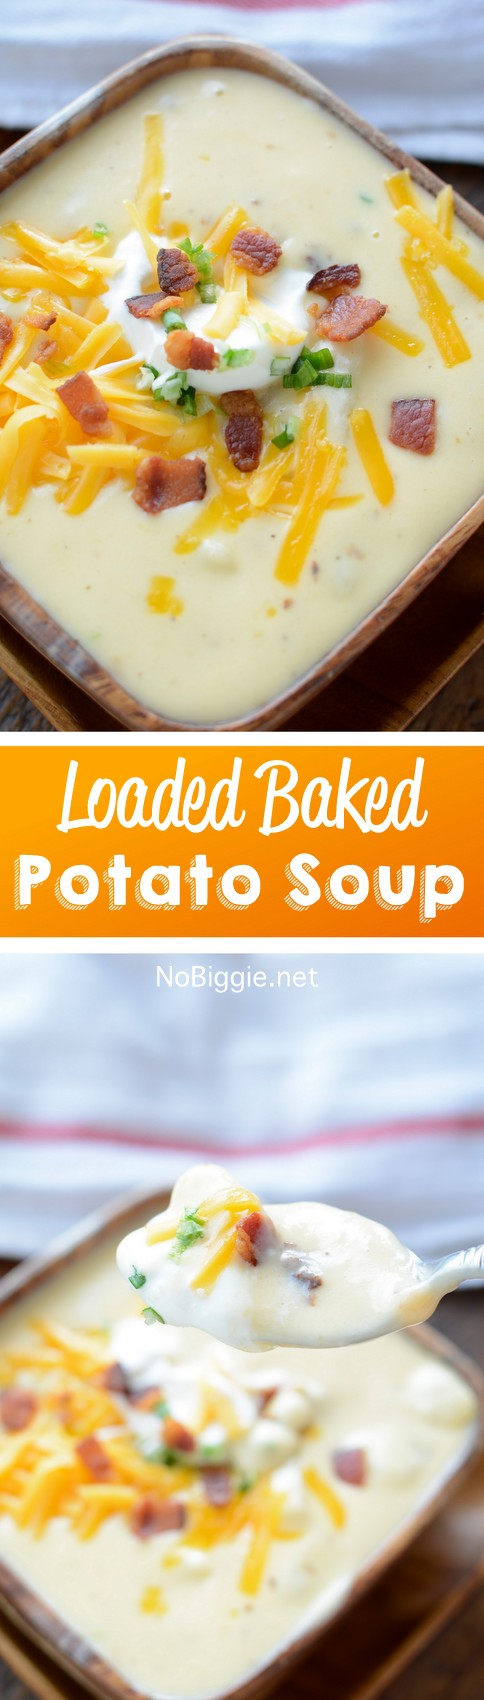 http://www.nobiggie.net/wp-content/uploads/2016/03/loaded-baked-potato-soup-recipe.jpg